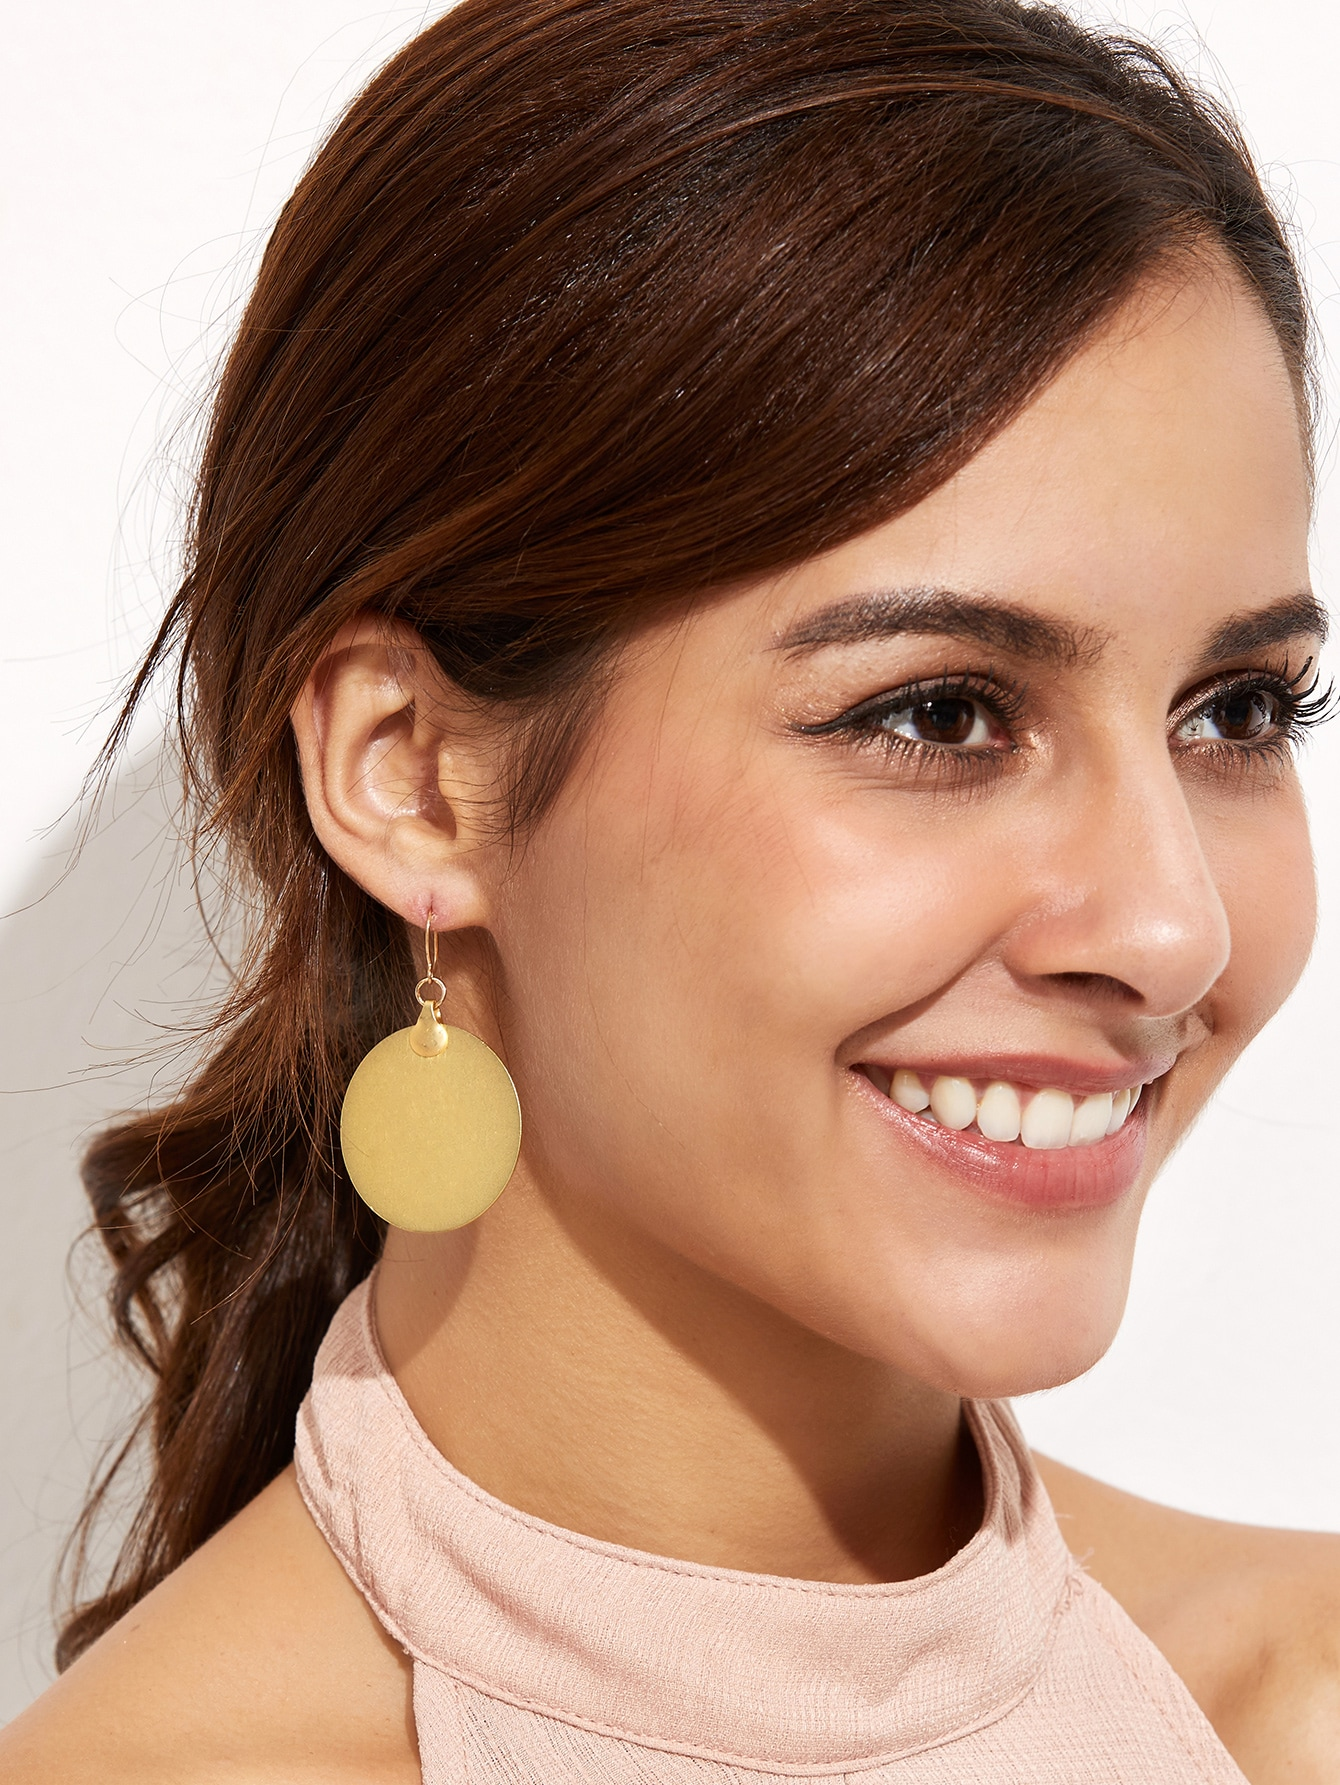 Gold Plated Round Drop EarringsGold Plated Round Drop Earrings<br><br>color: Gold<br>size: None